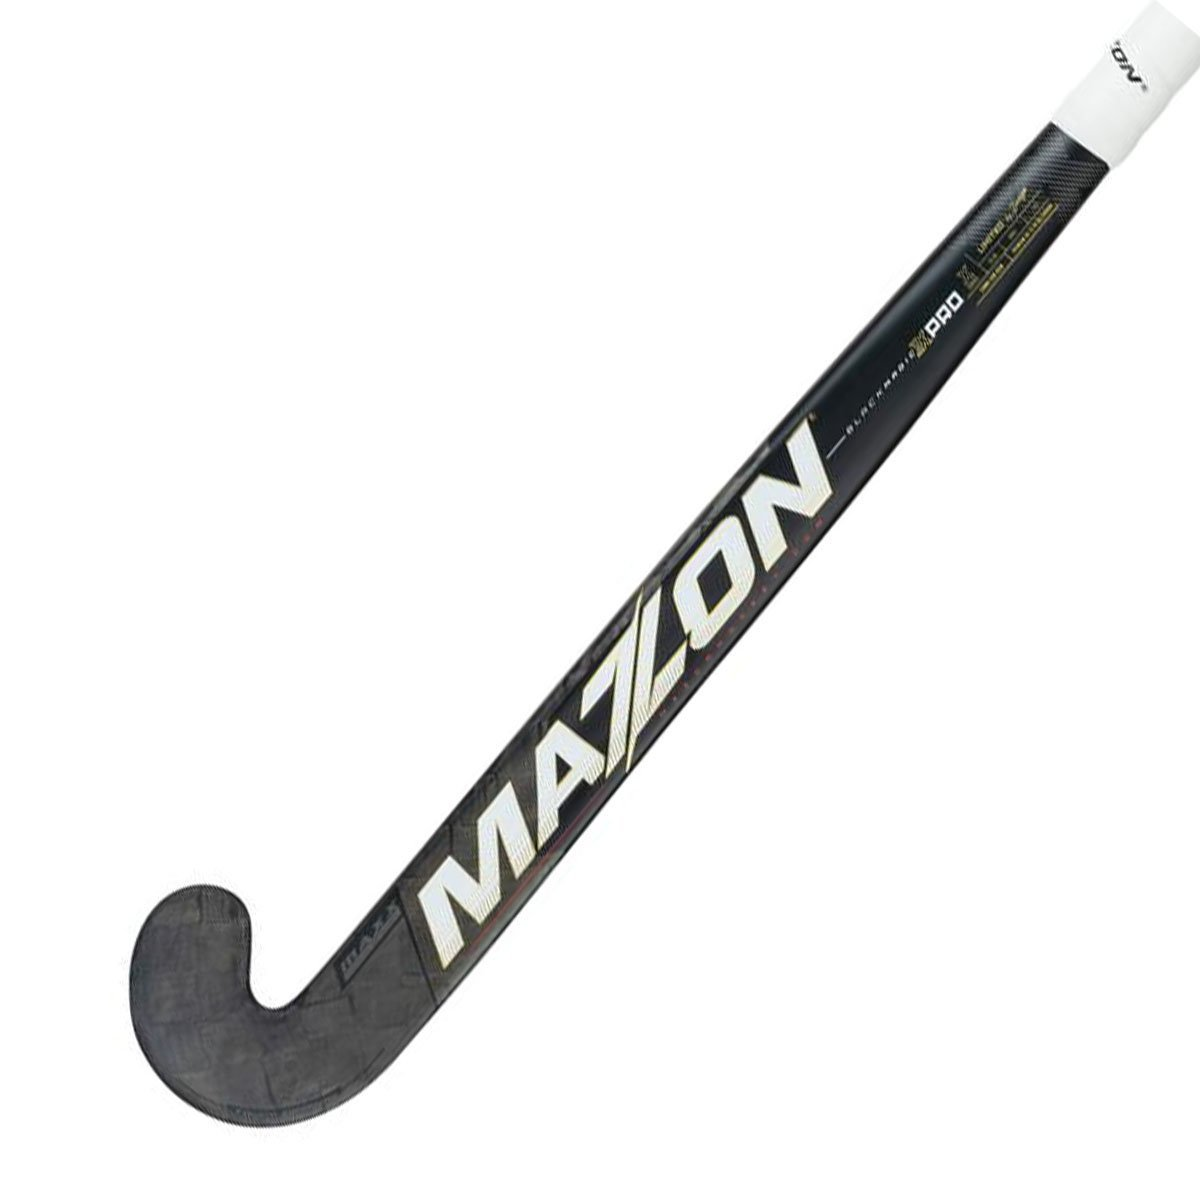 Mazon BlackMagic XPro LB - Just Hockey